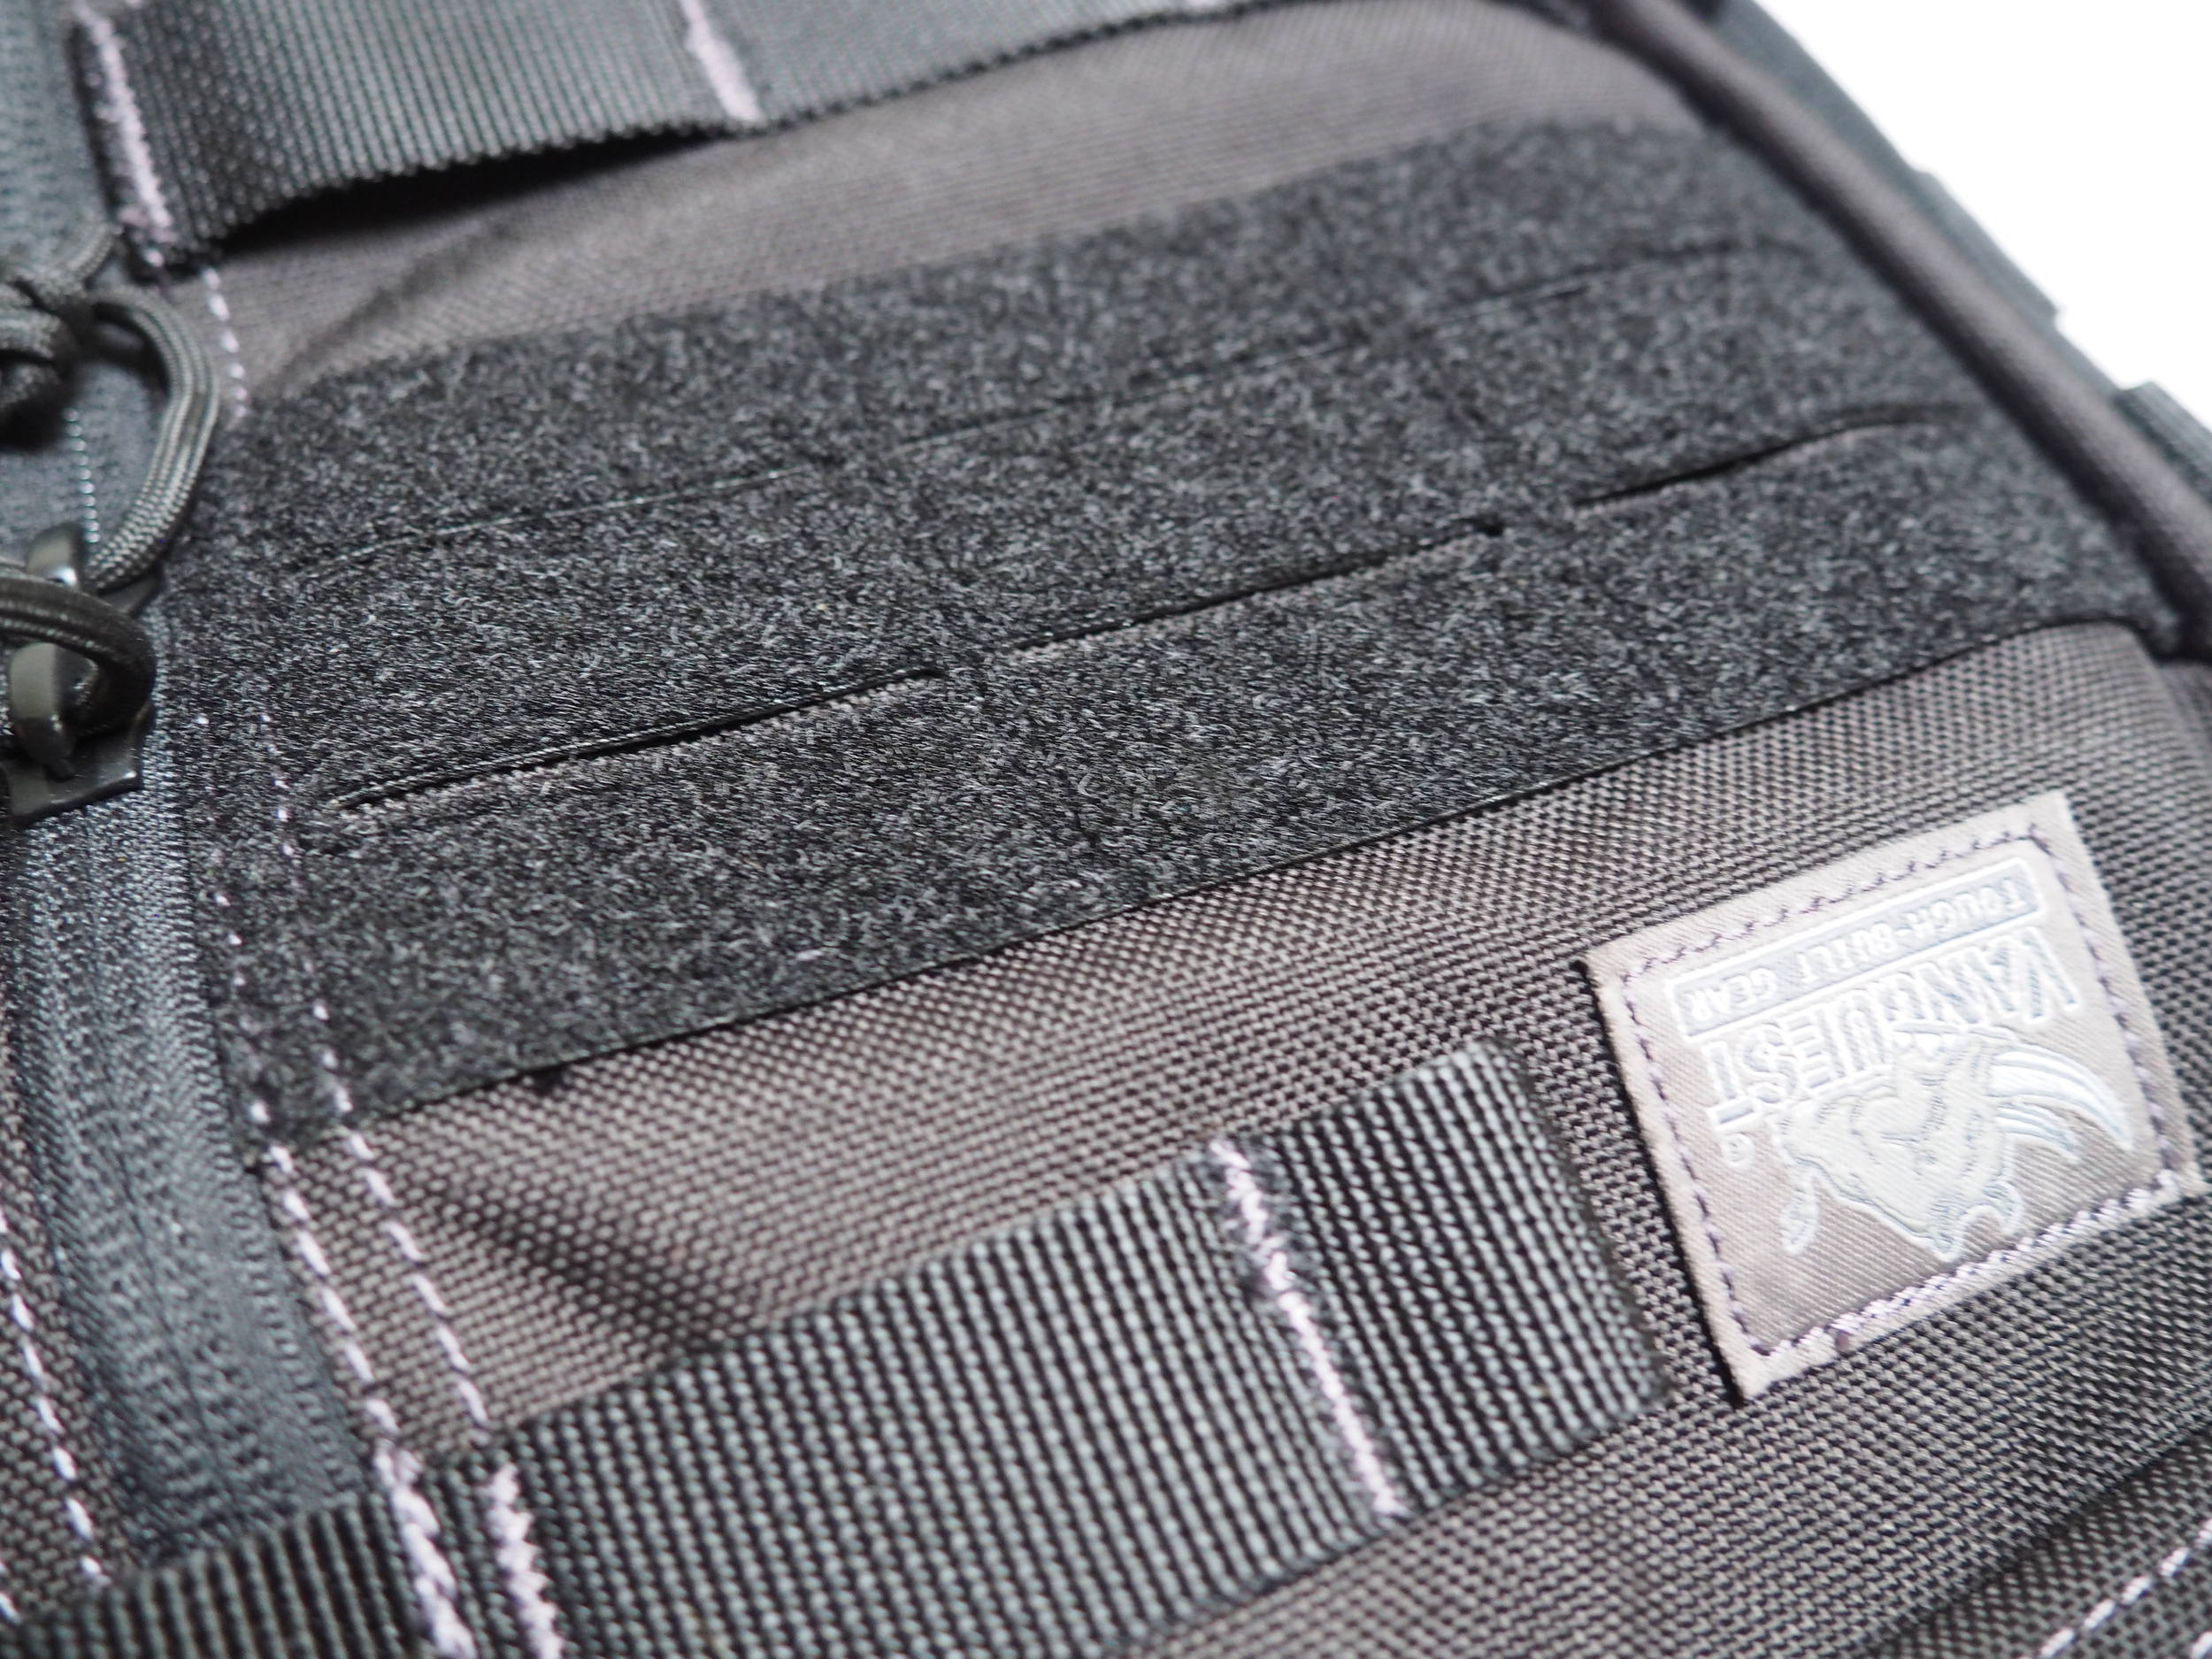 New MOLLE-Air panel